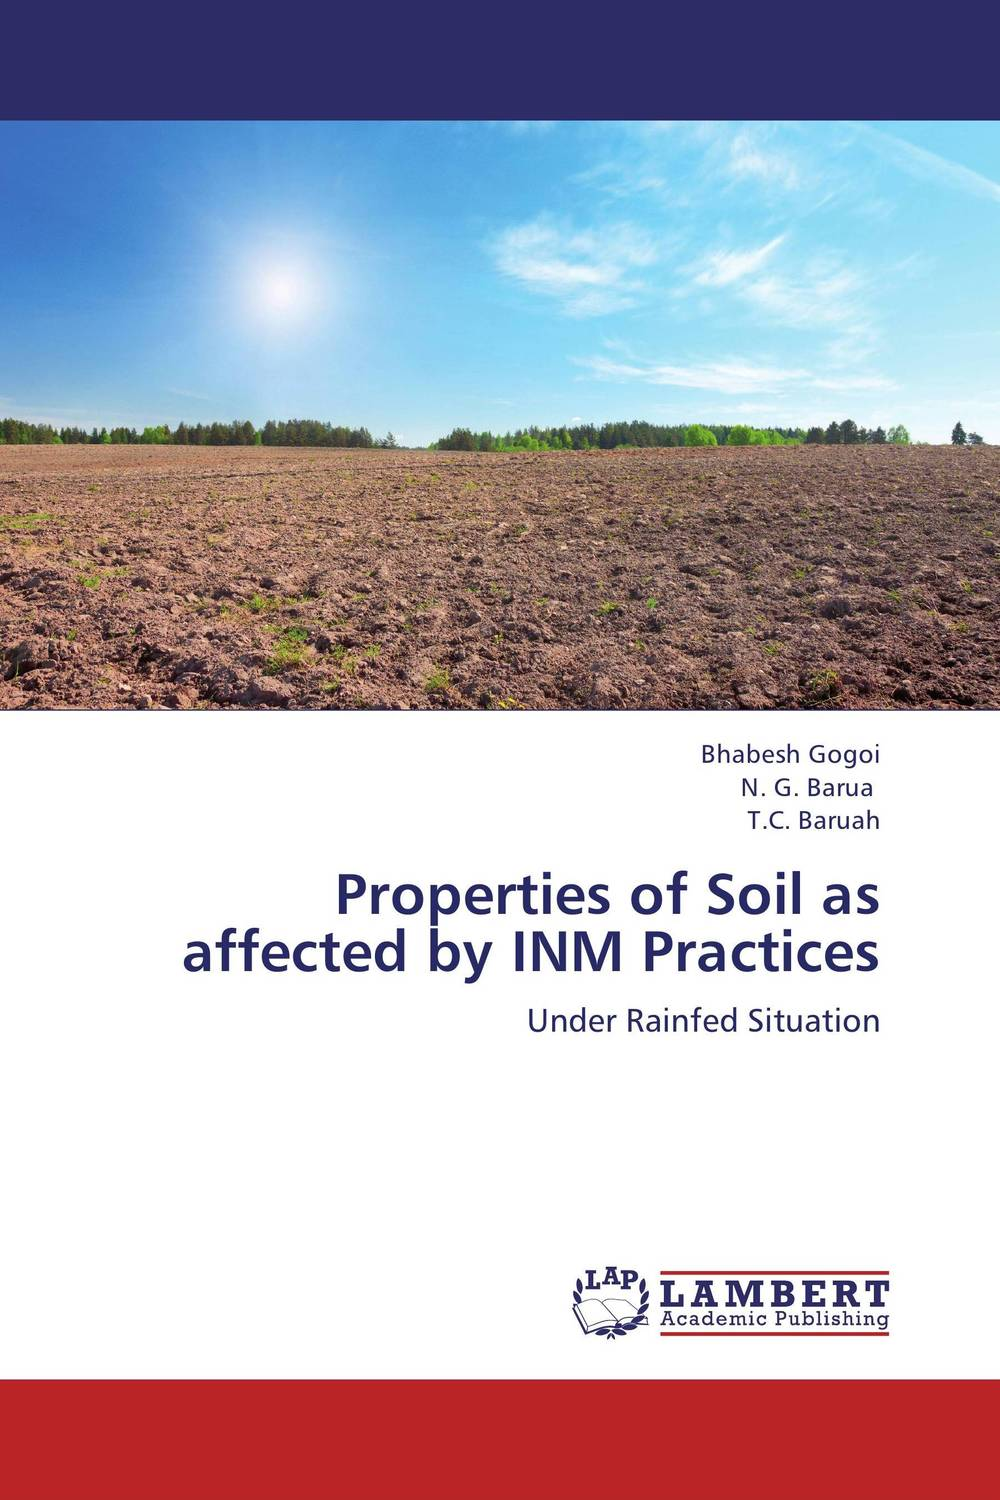 Properties of Soil as affected by INM Practices nutrient dynamics in a pristine subtropical lagoon estuarine system